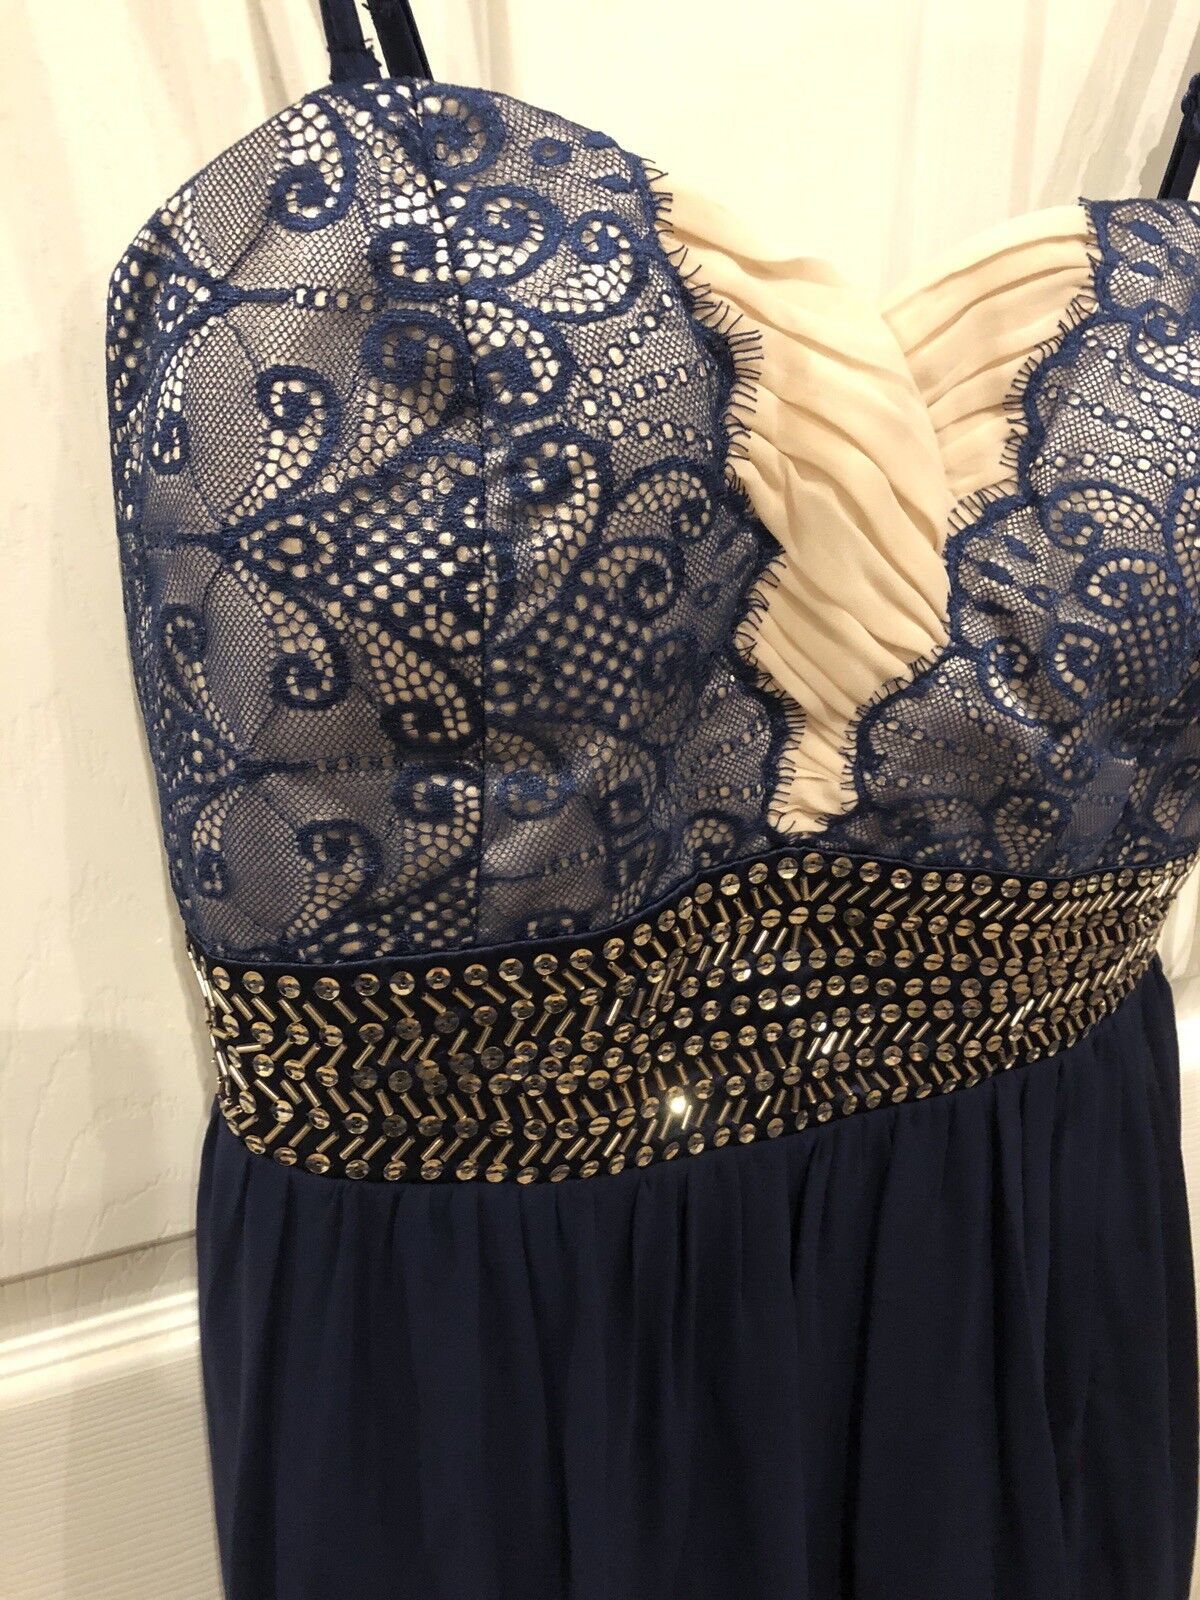 Navy And Nude Lace Evening event Dress Size 14 BNWT